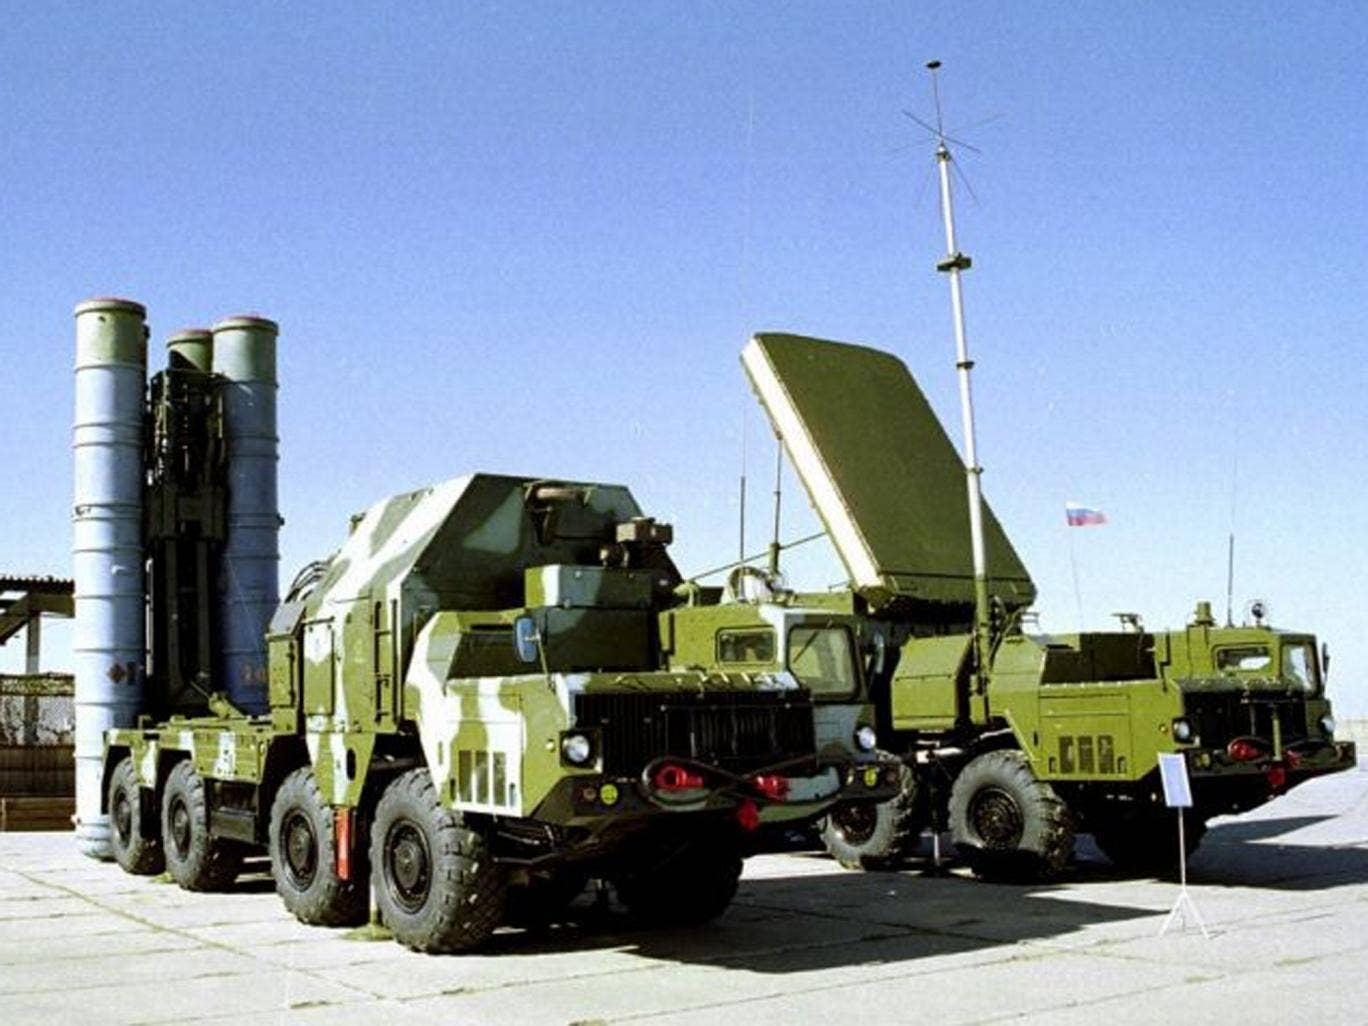 Russia's foreign minister Sergei Ryabkov said that Moscow has a contract for the delivery of the S-300s to Syria and sees the deal as a key deterrent against foreign invasion in that country